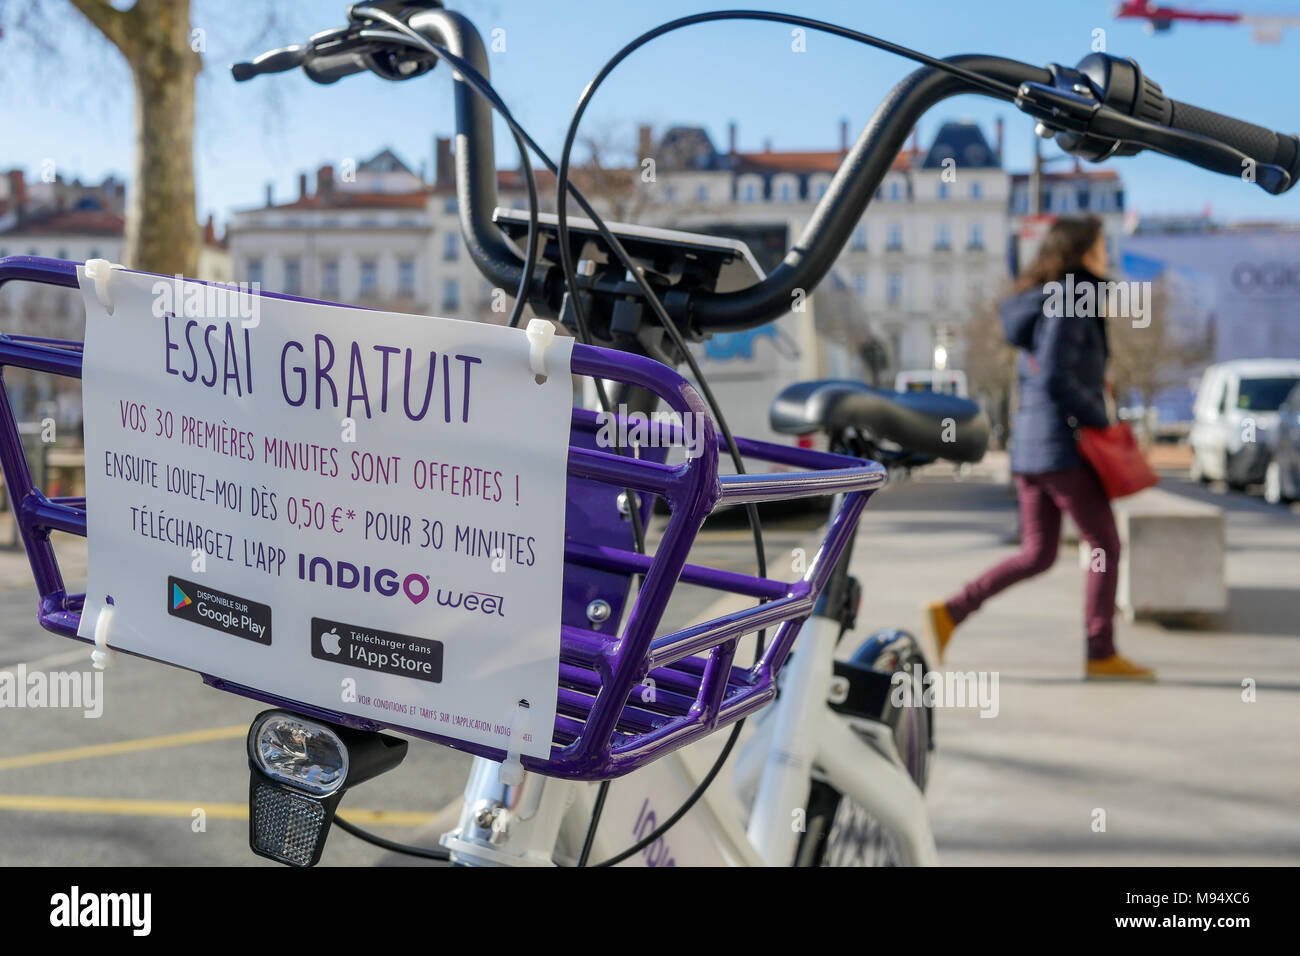 Lyon, France, 22nd March 2018: A few weeks after the removal